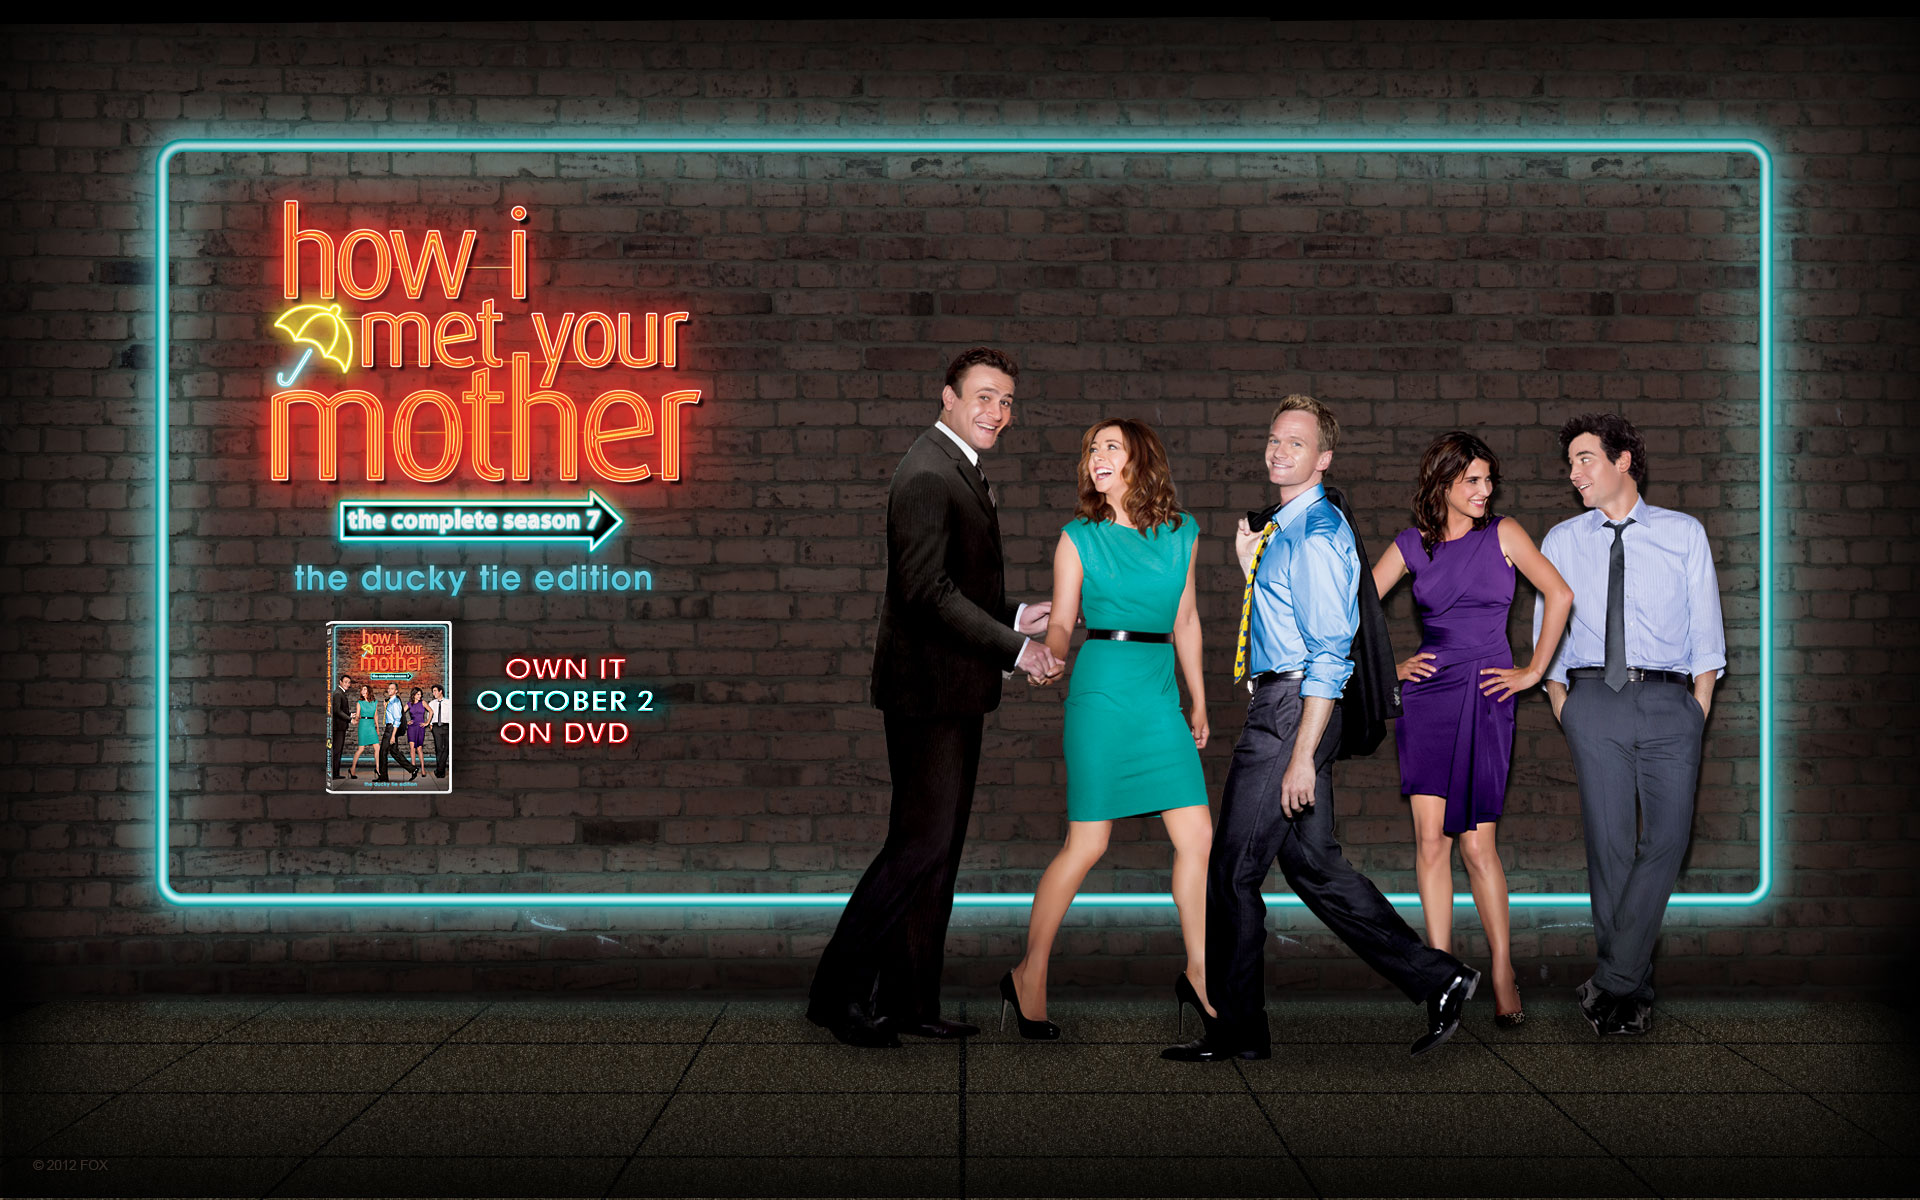 fox home entertainment how i met your mother wallpaper 1920 x 1200 b 1920x1200